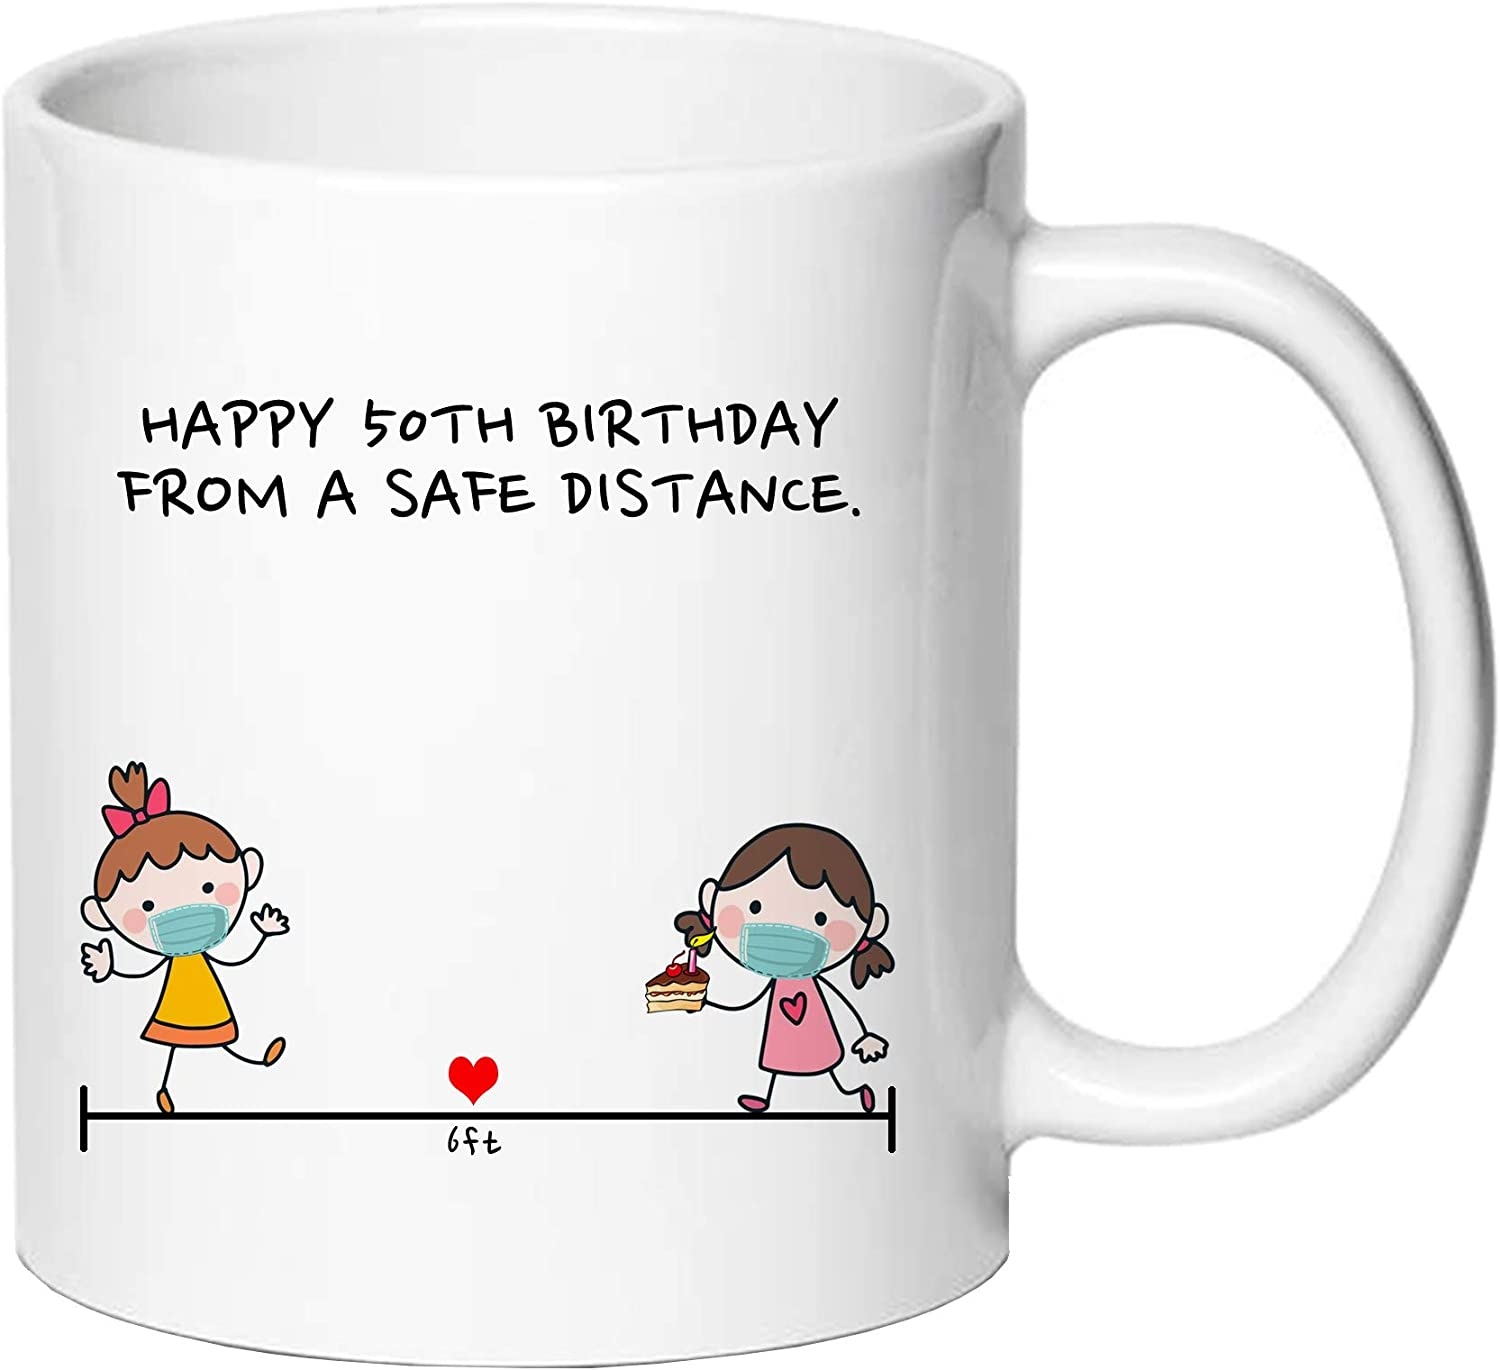 AliCarr Happy 50TH Birthday from A Safe Distance 6ft Away Coffee Mugs - Novelty Ceramic Coffee Mug Tea Cup White 50th Birthday Gifts for Women Gift Ideas